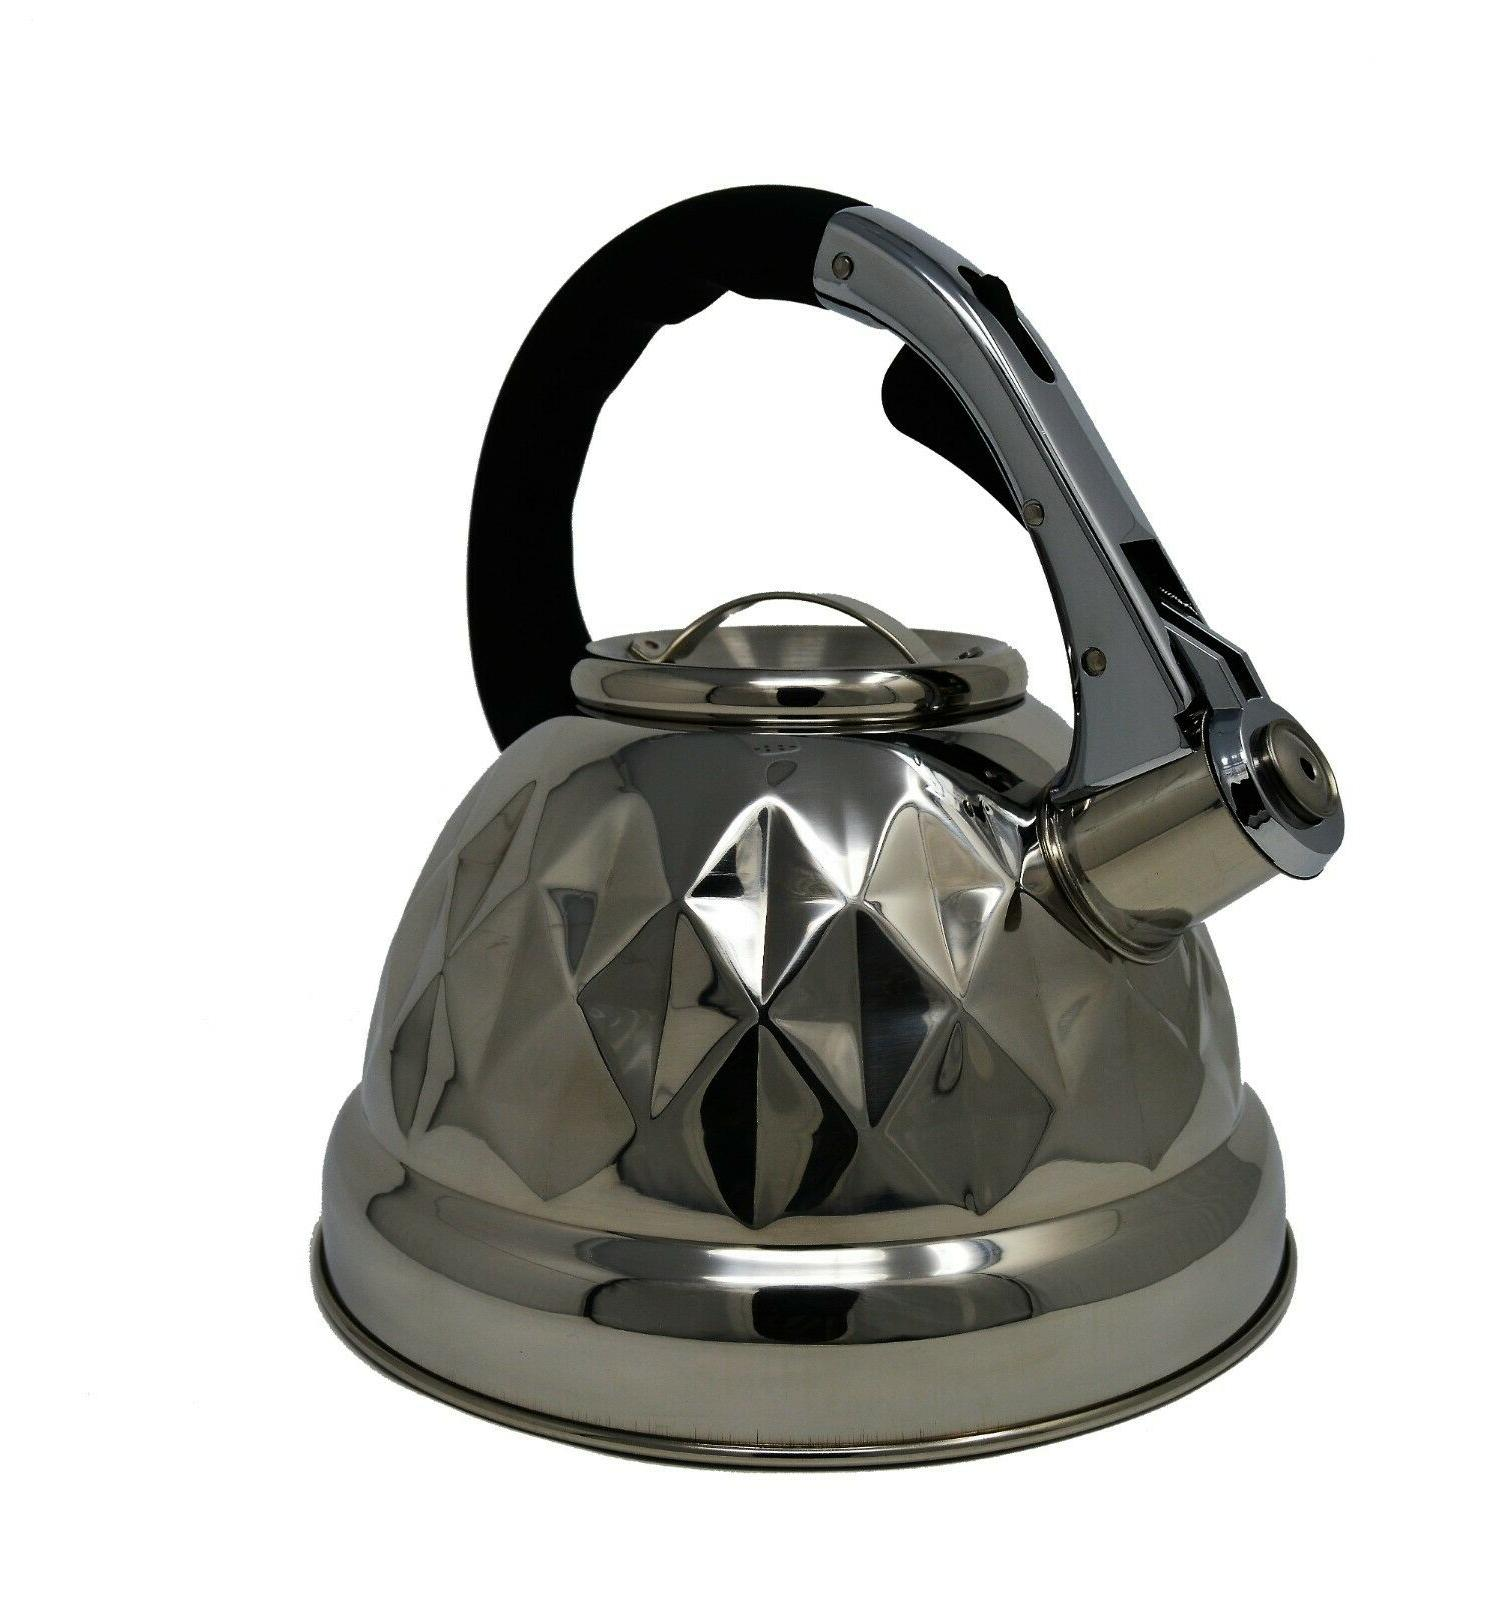 Whistling Tea Kettle 3qt Tea BLK Ha